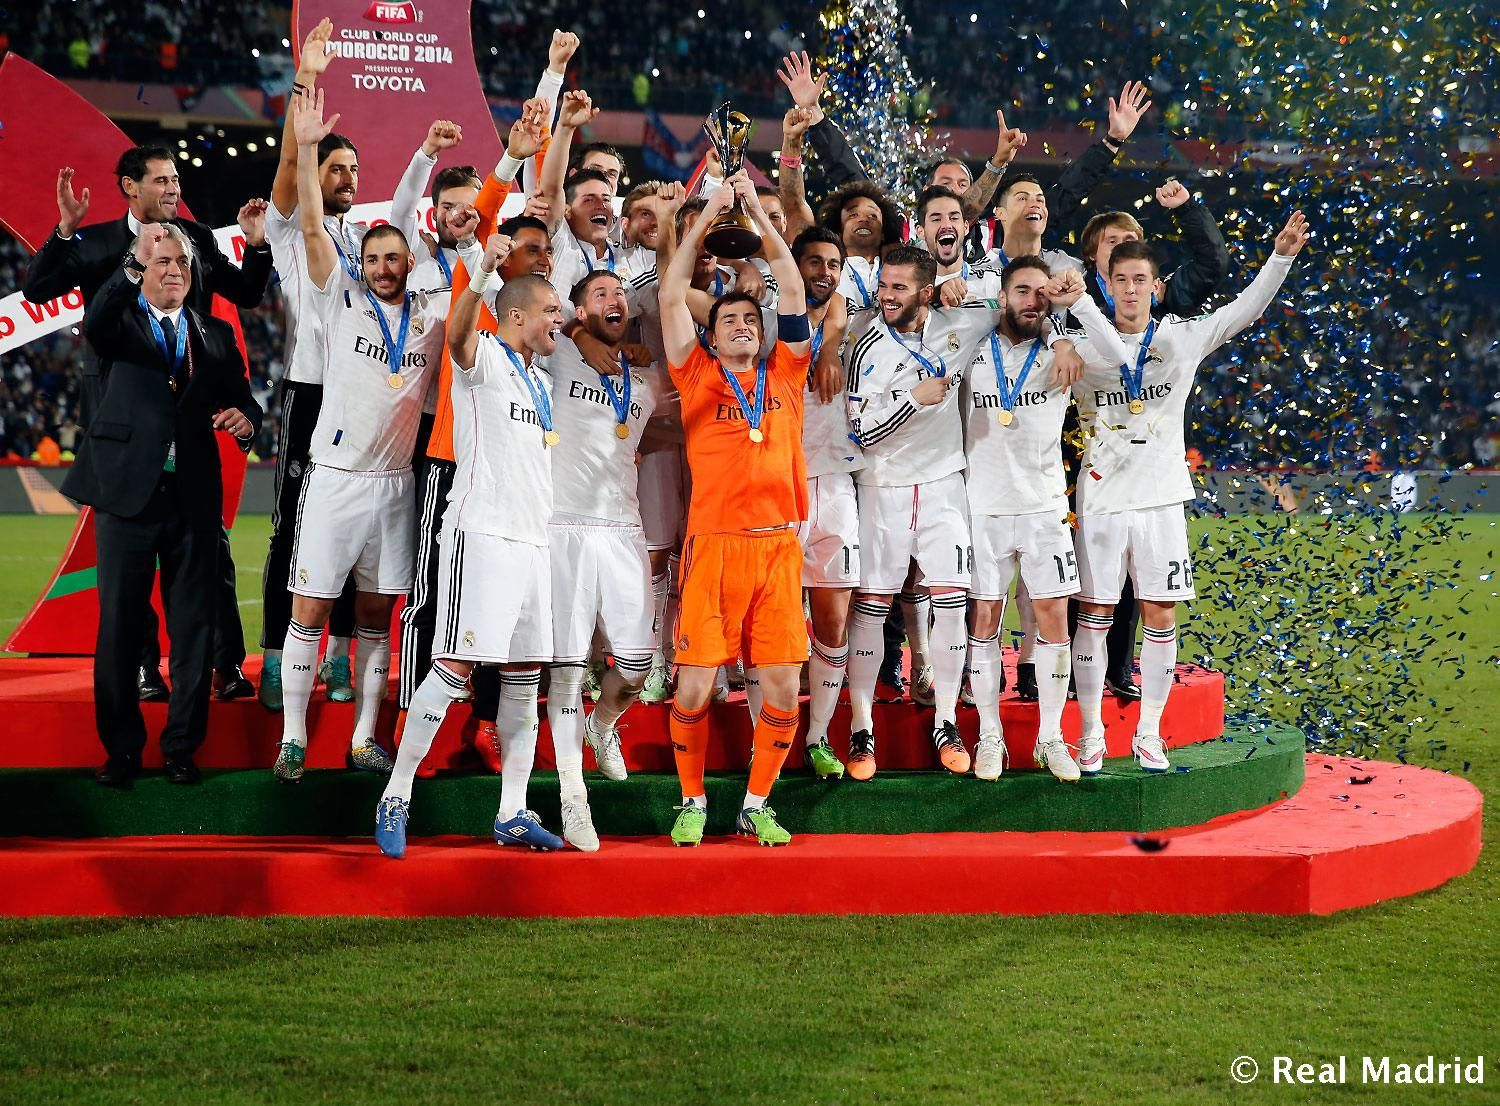 The Real Madrid Cf Celebrate With The Fifa Club World Cup Trophy During A Presentation Ceremony Real Madrid Football Club Real Madrid Win Real Madrid Football